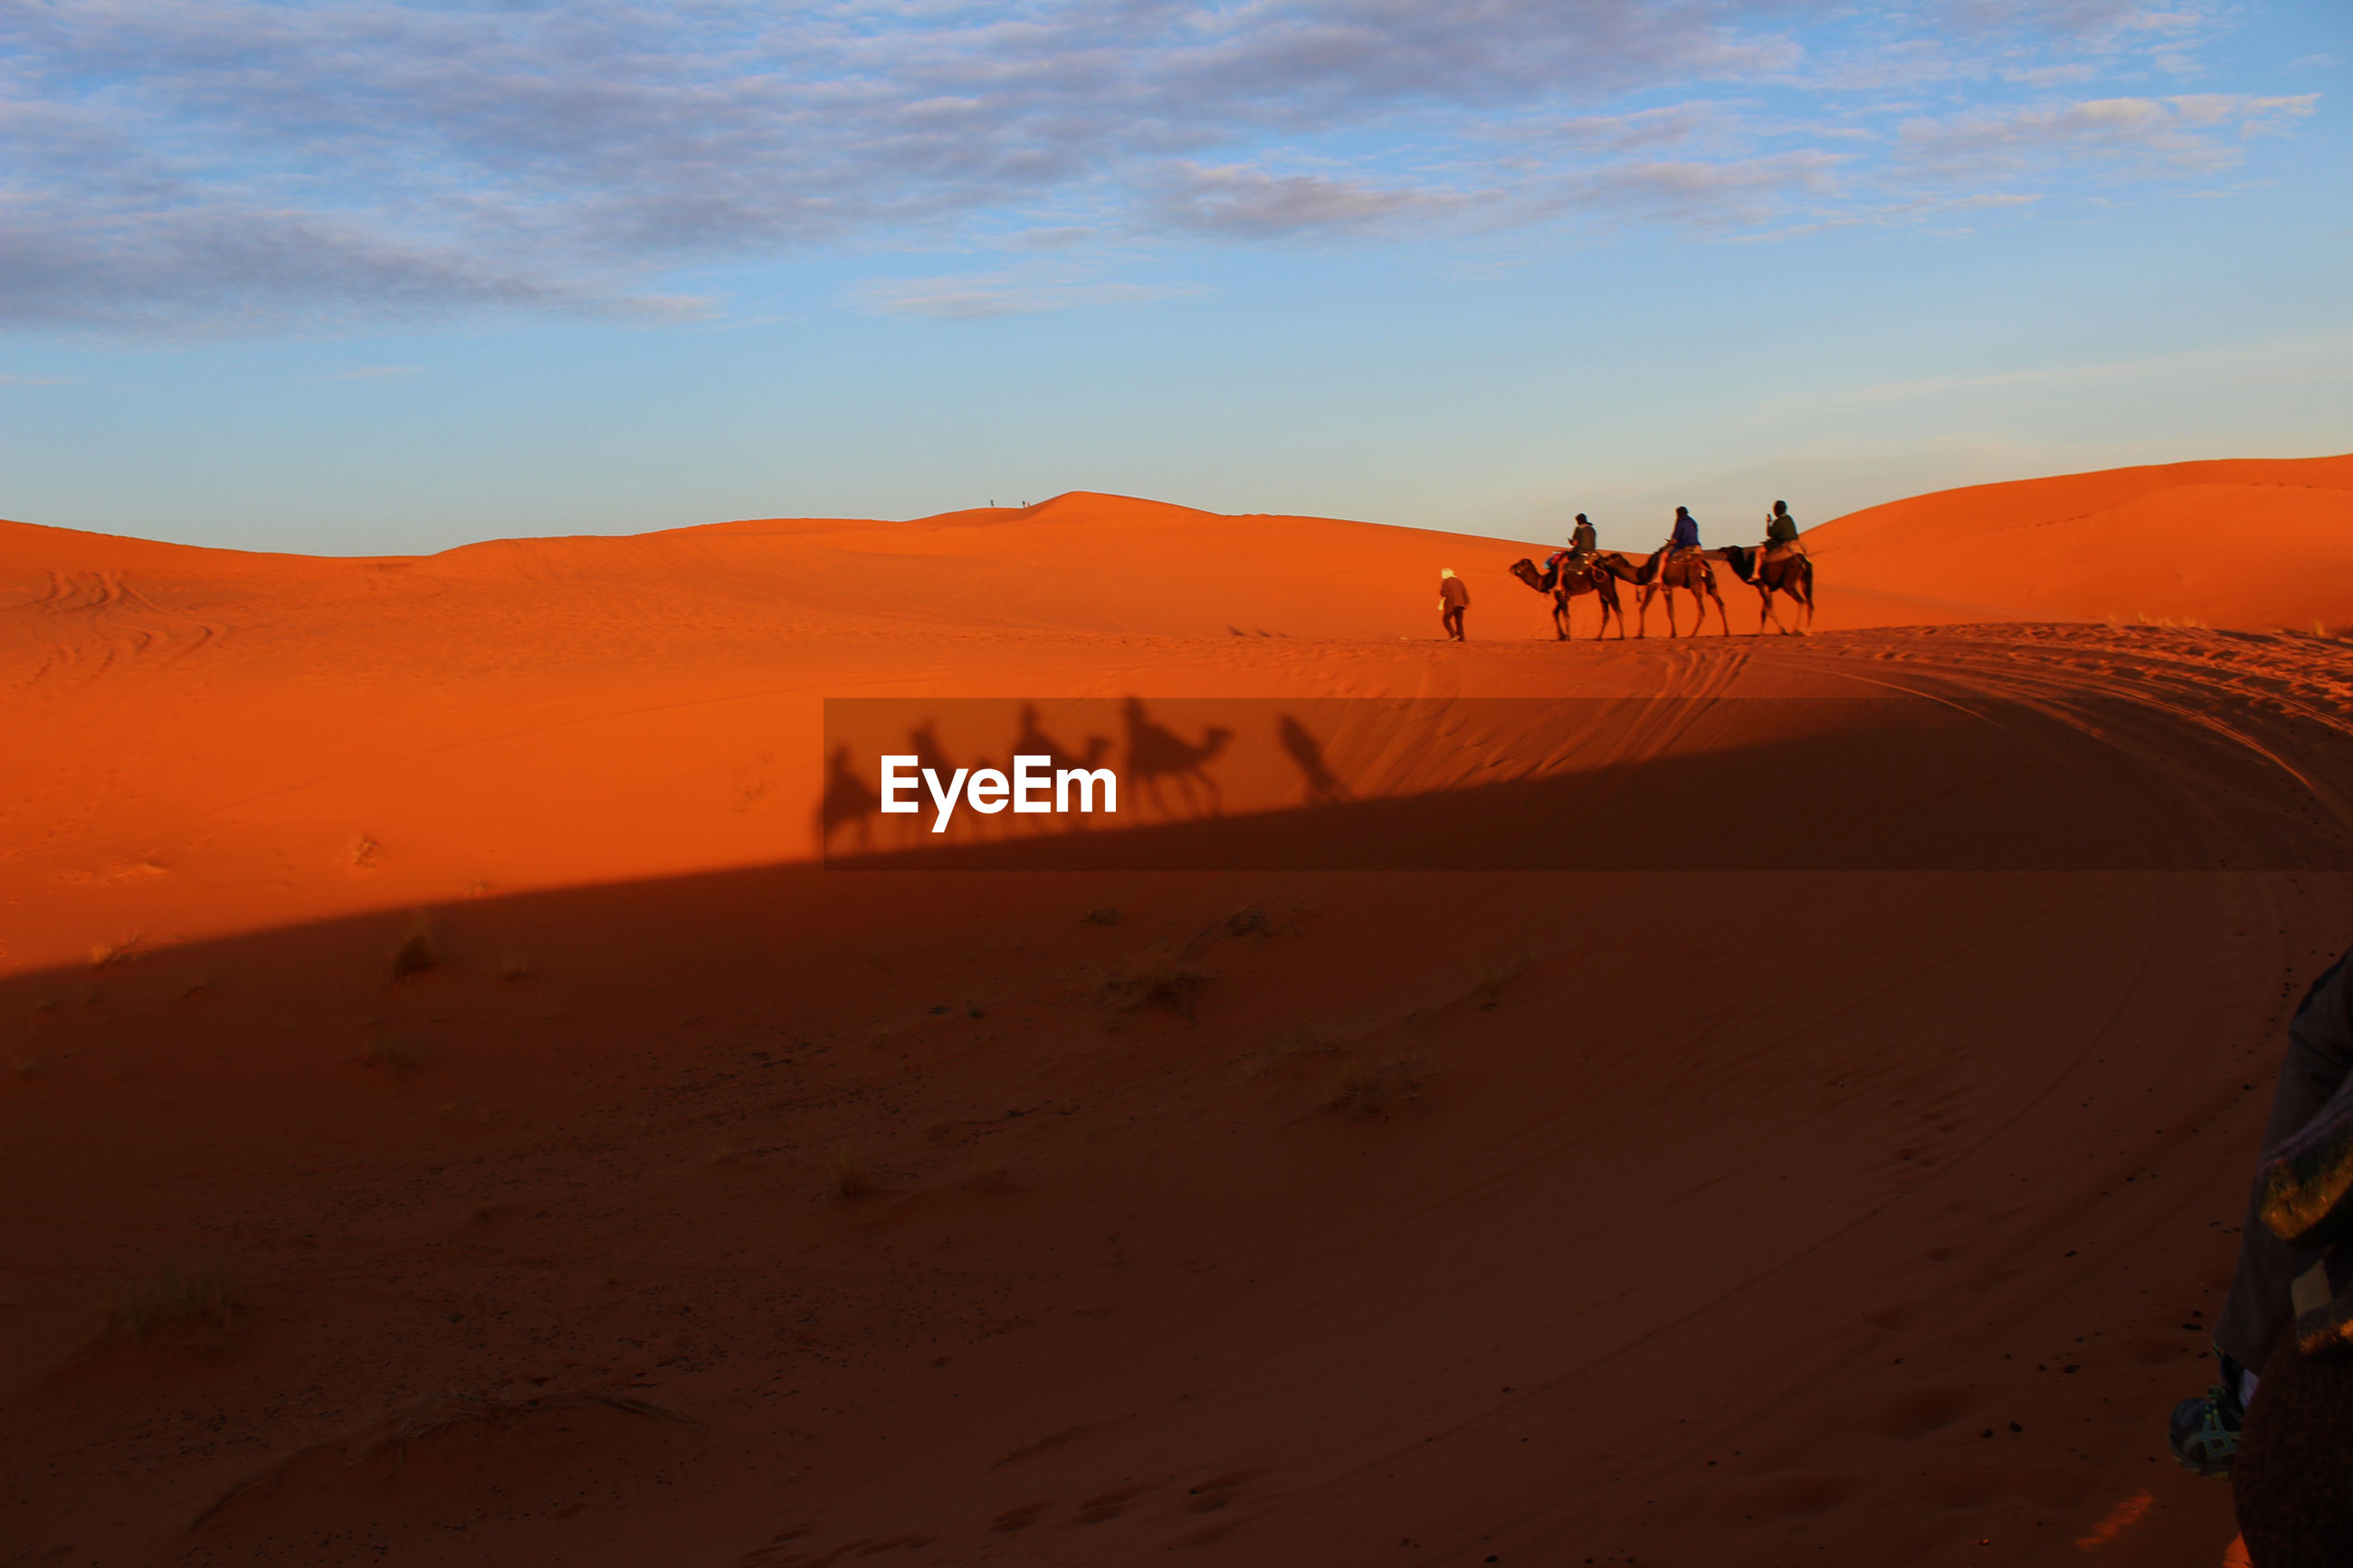 VIEW OF PEOPLE RIDING IN DESERT